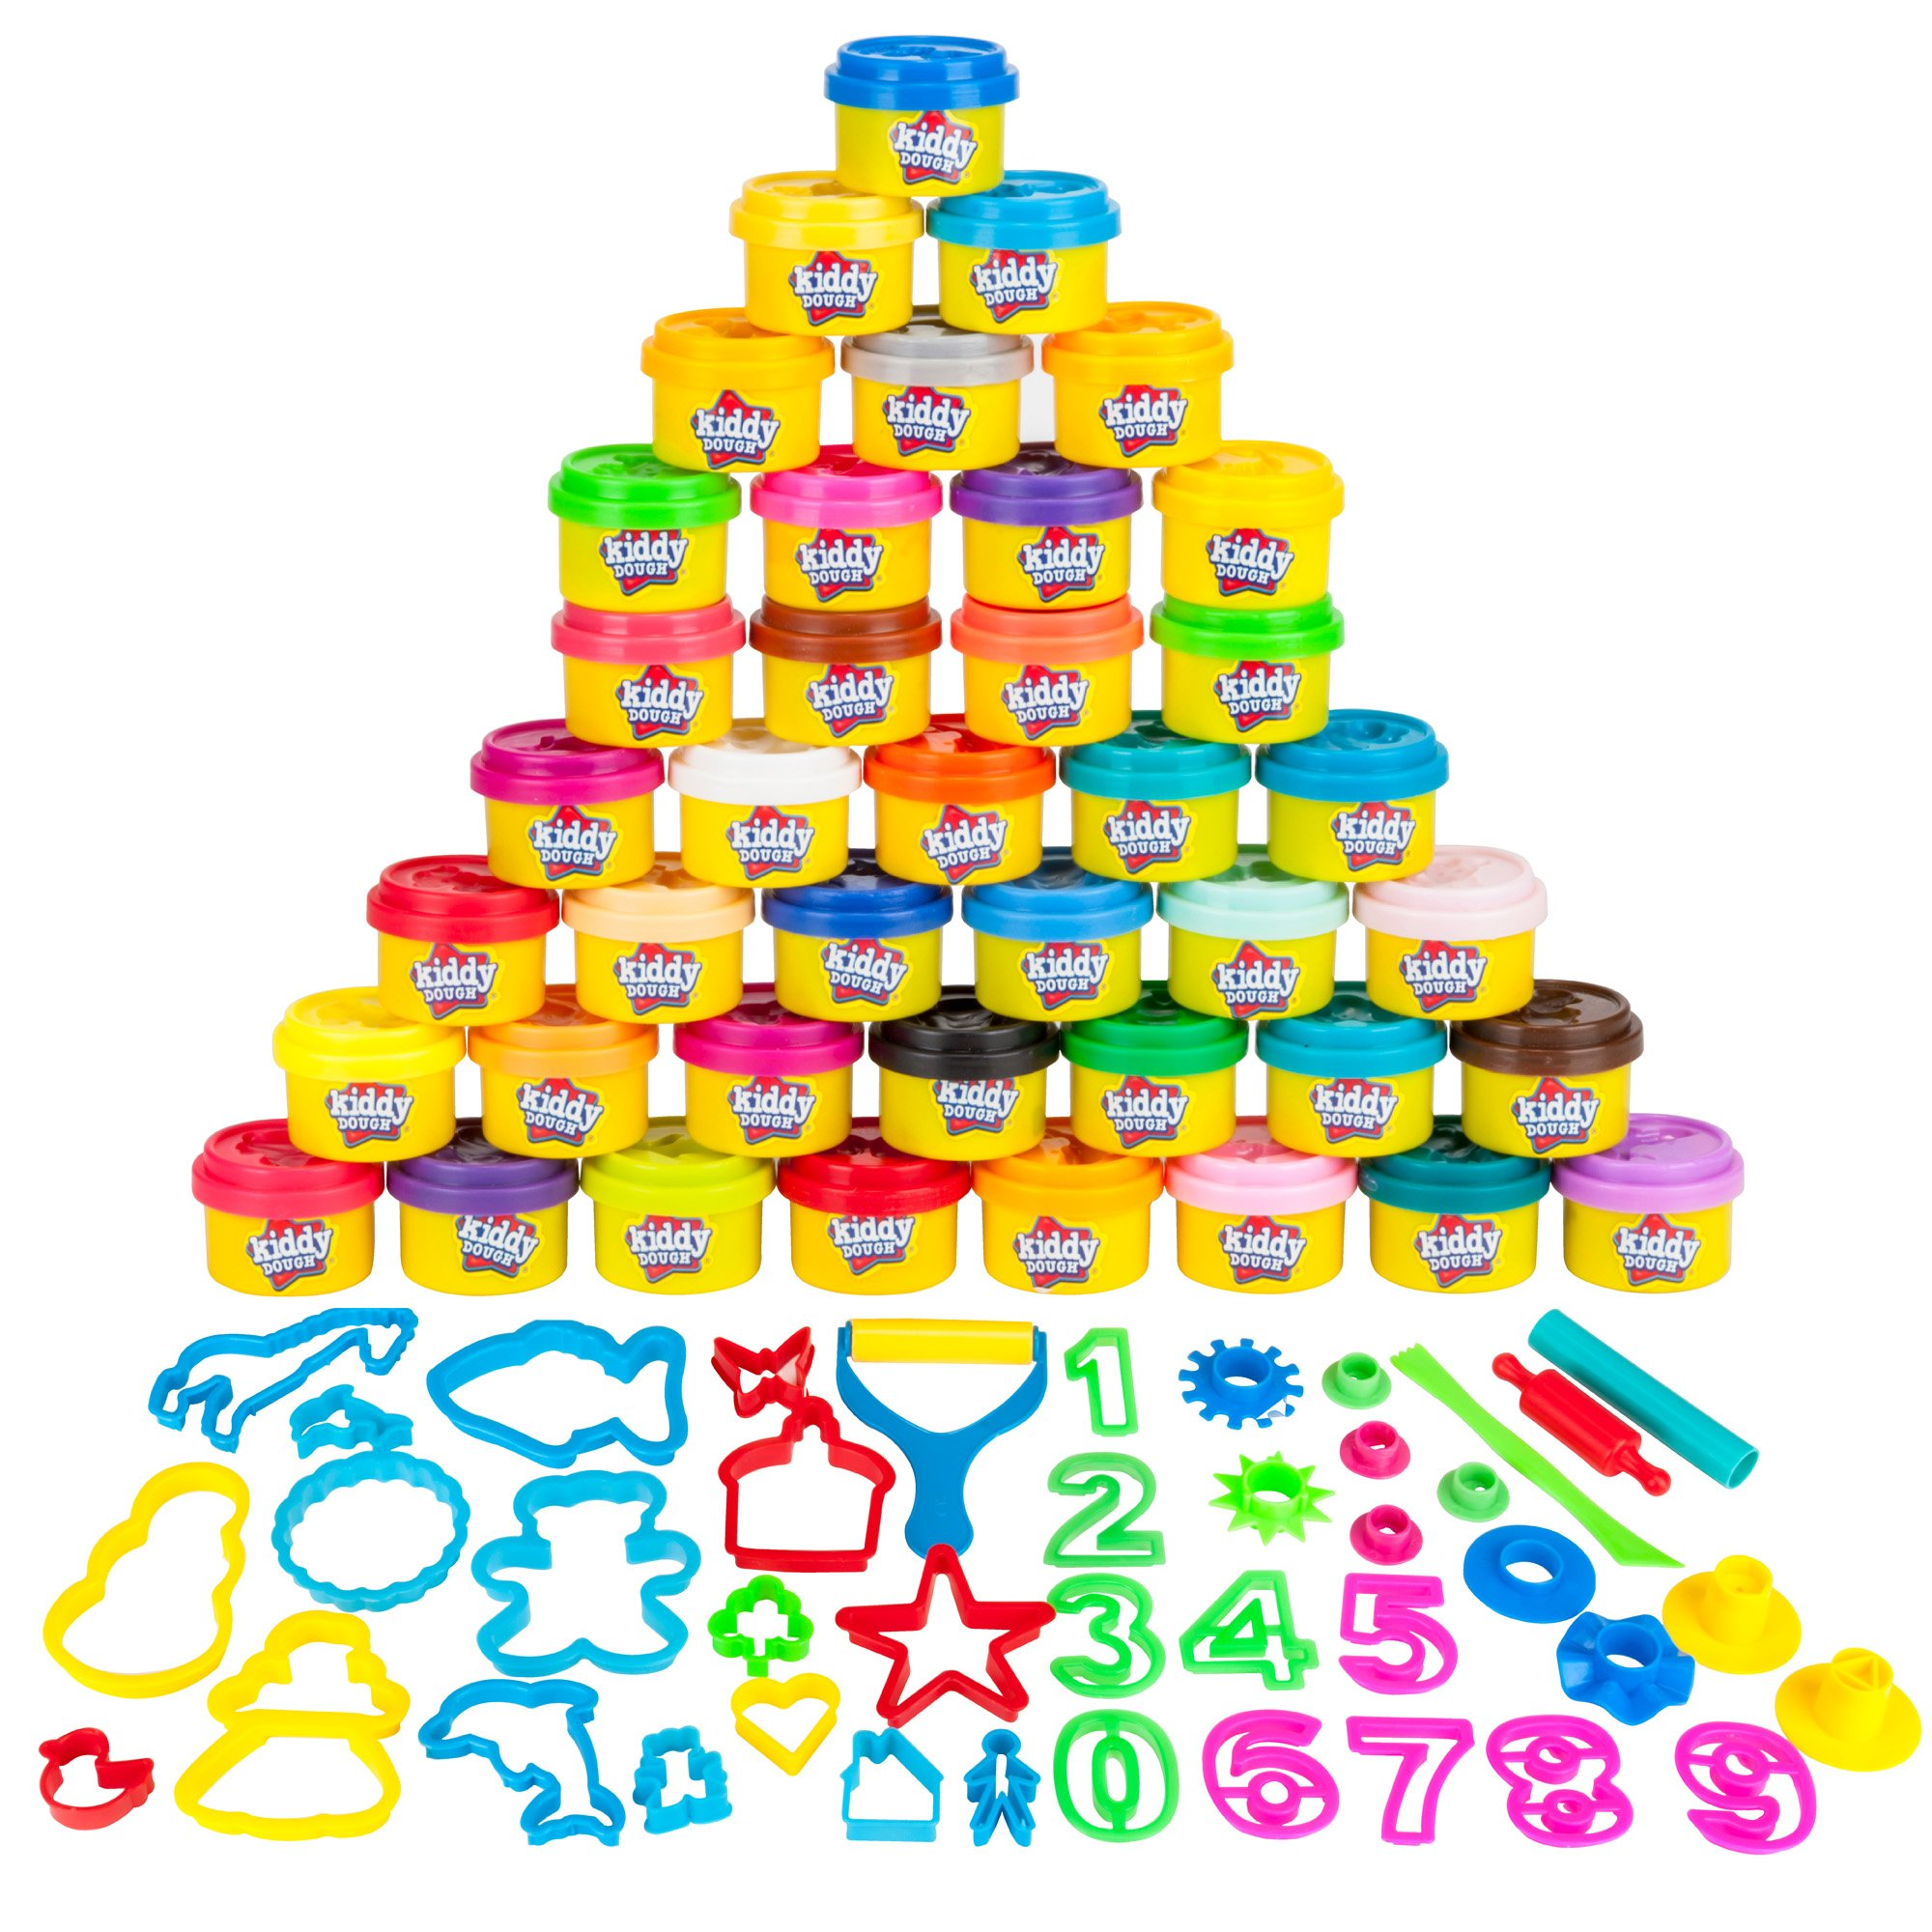 KIDDY DOUGH 40 Pack of Birthday Party Favors Bulk Dough & Clay Pack - Includes Molded Animal Shaped Lids + 40 Shapes & Numbers Dough Tools - Holiday Edition - (1oz Tubs - 40oz Total), Multi Color